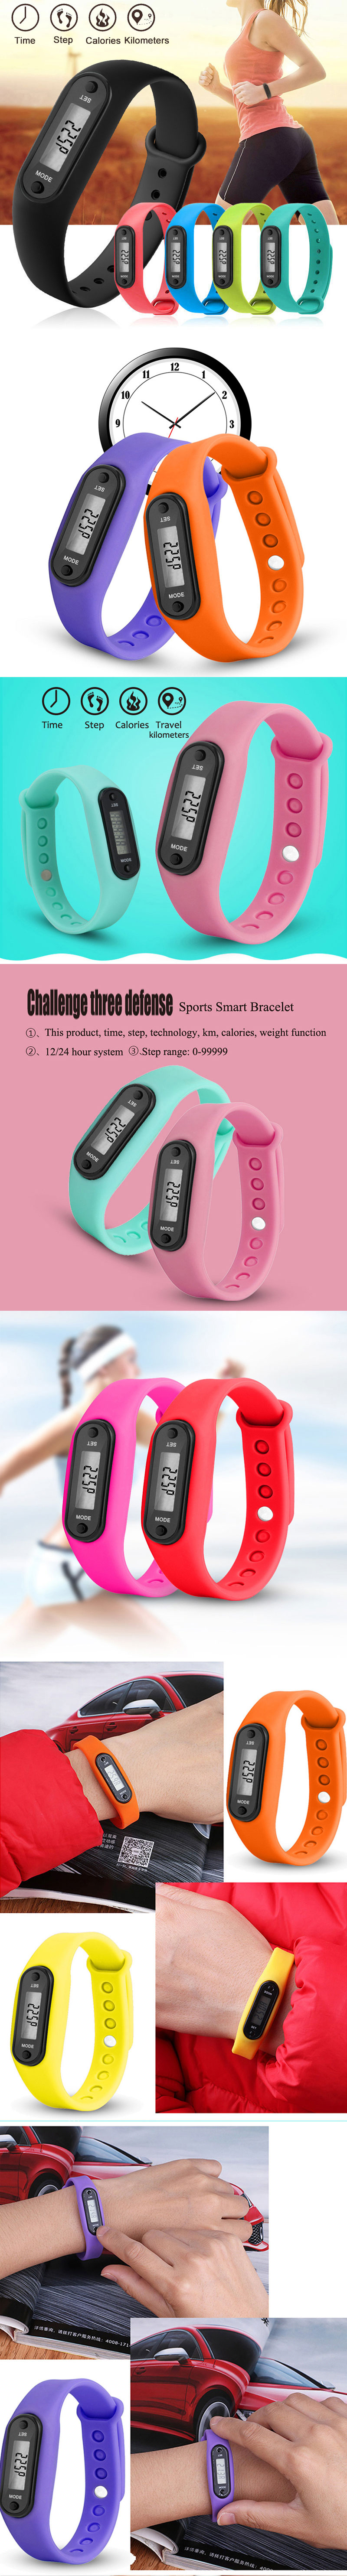 Digital Watch Pedometer Colorful Silicone Sport Watch